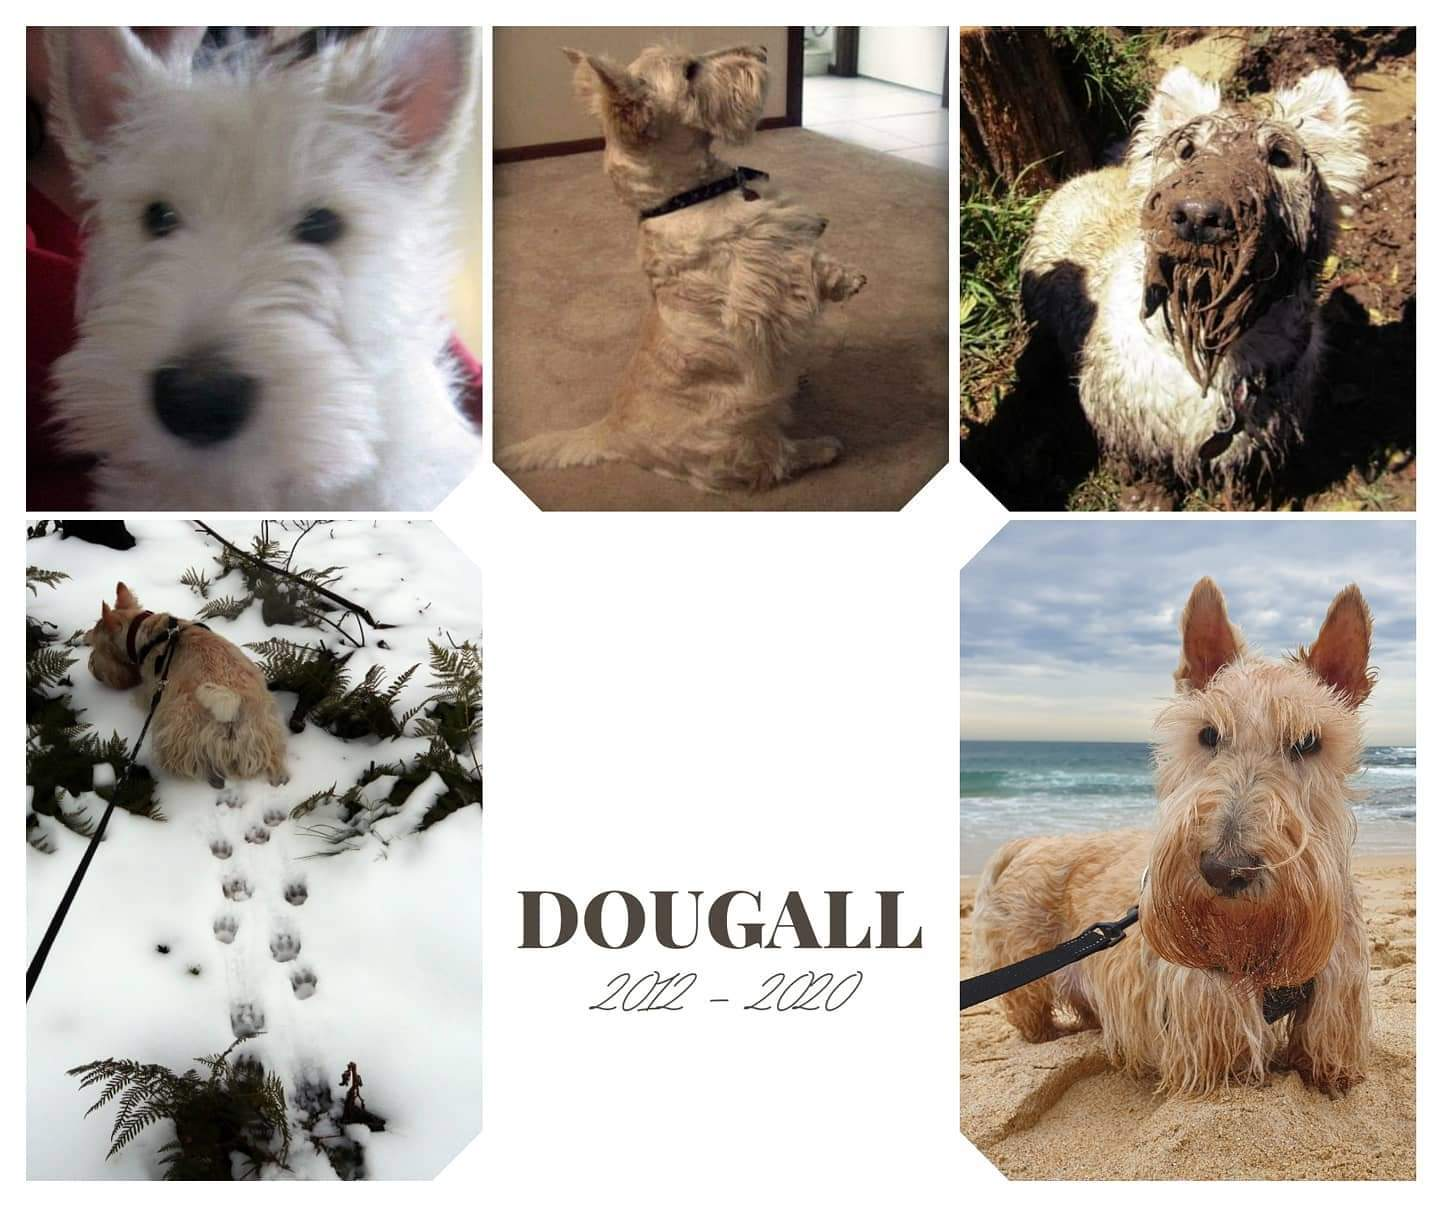 Dougall